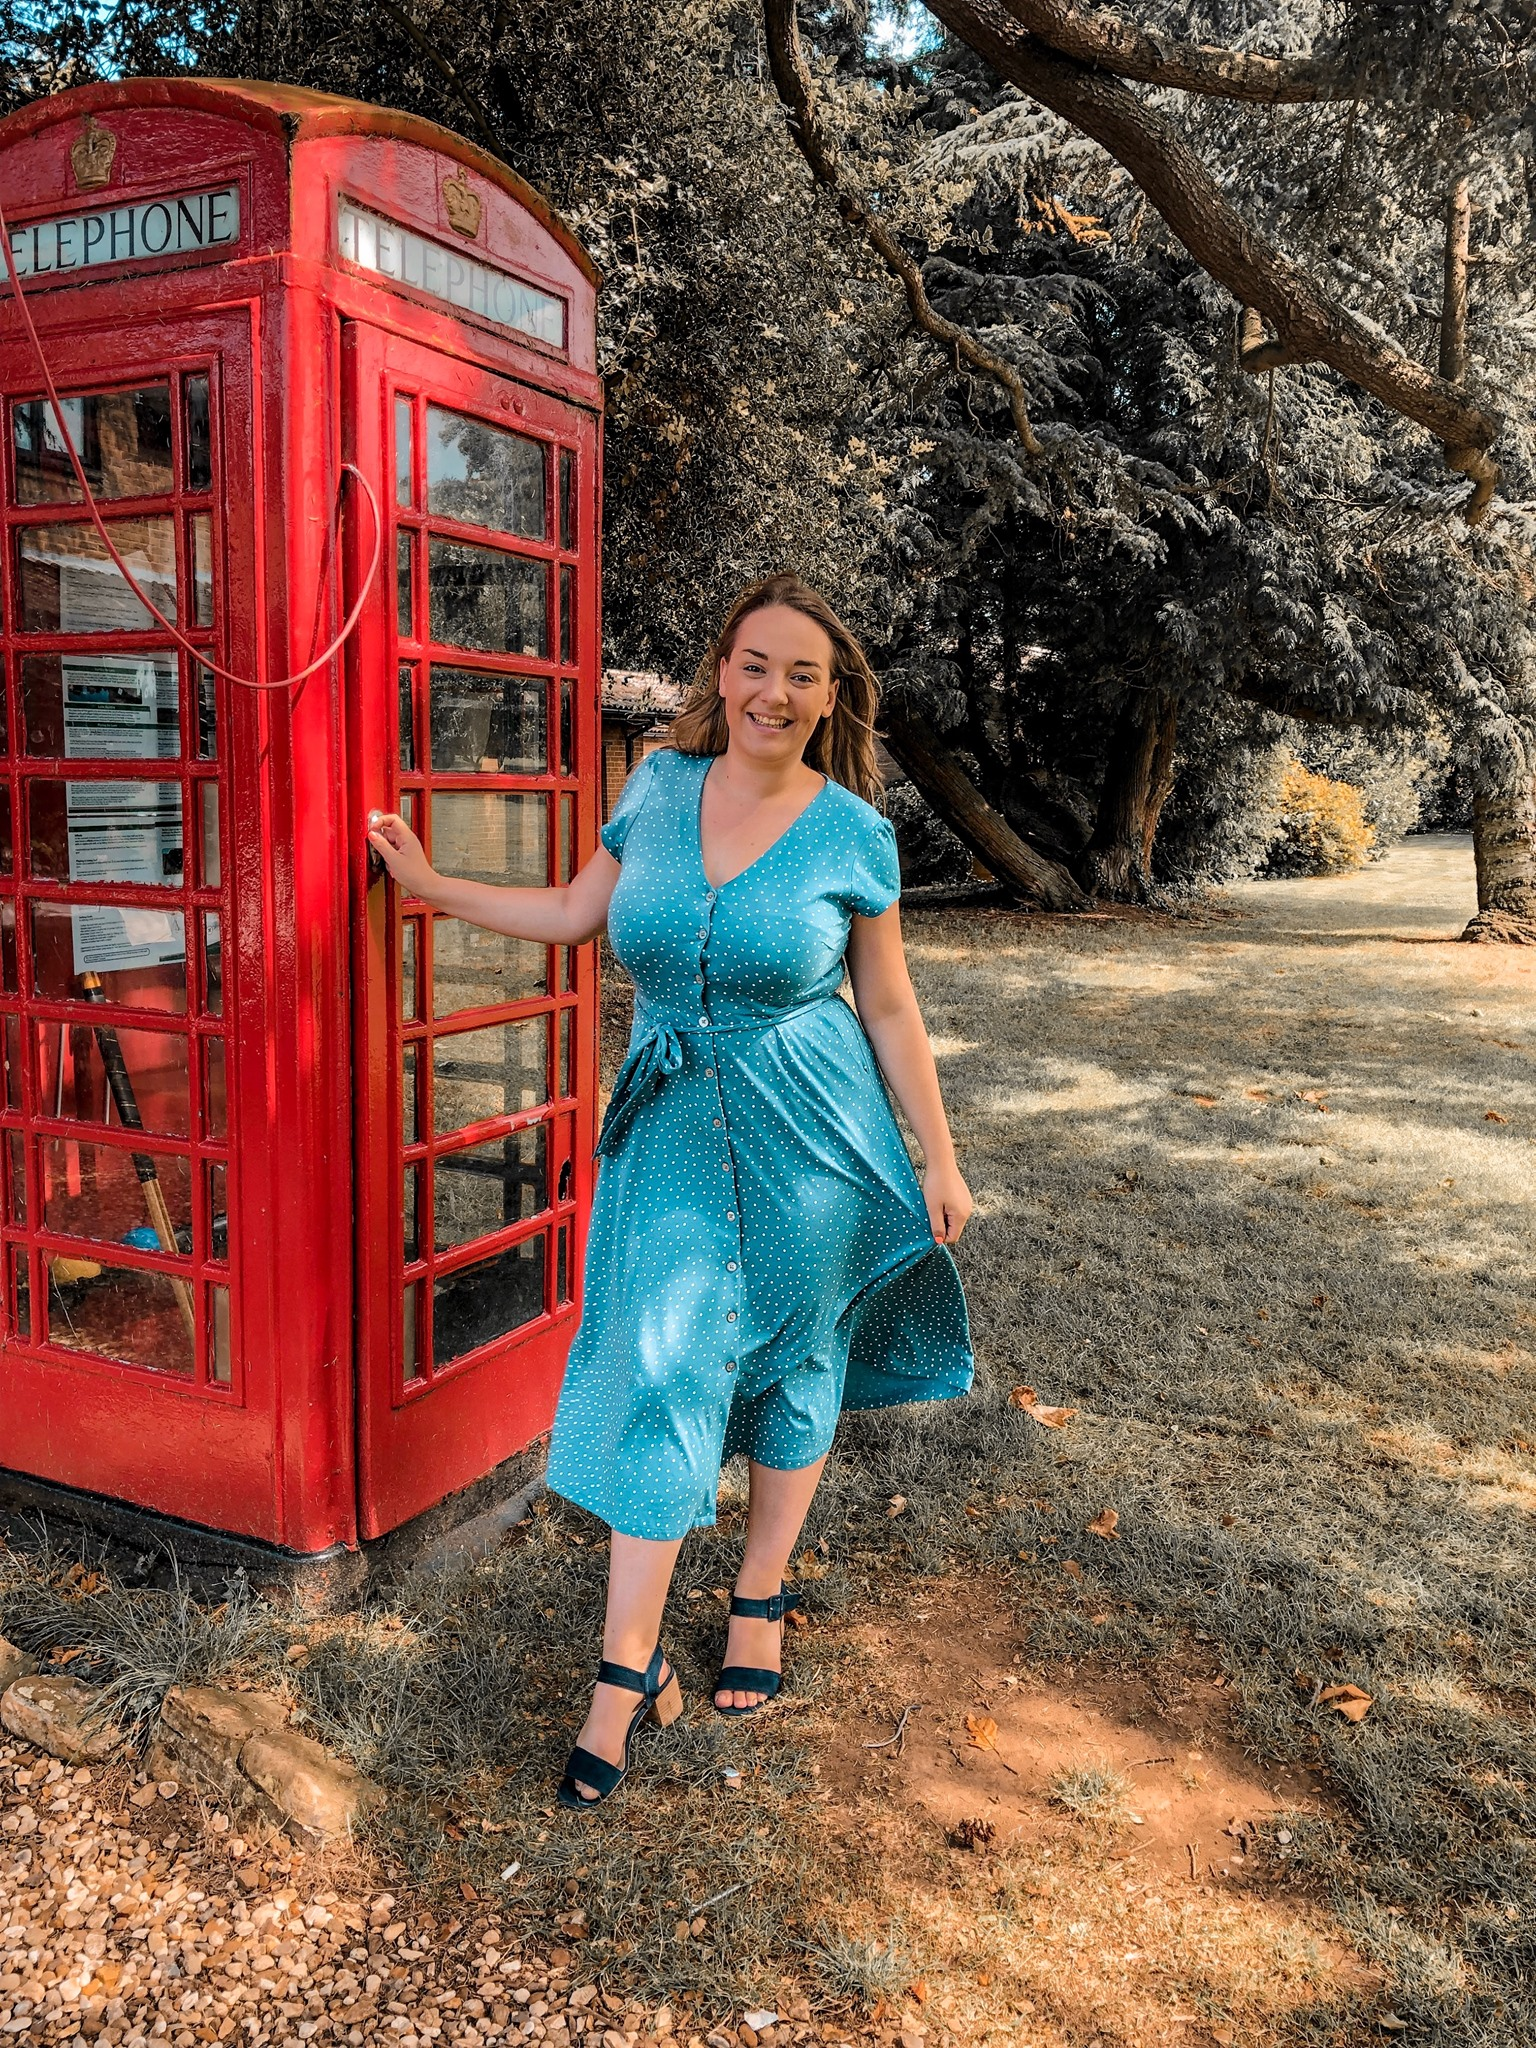 Red Telephone Boxes   Nicole Navigates